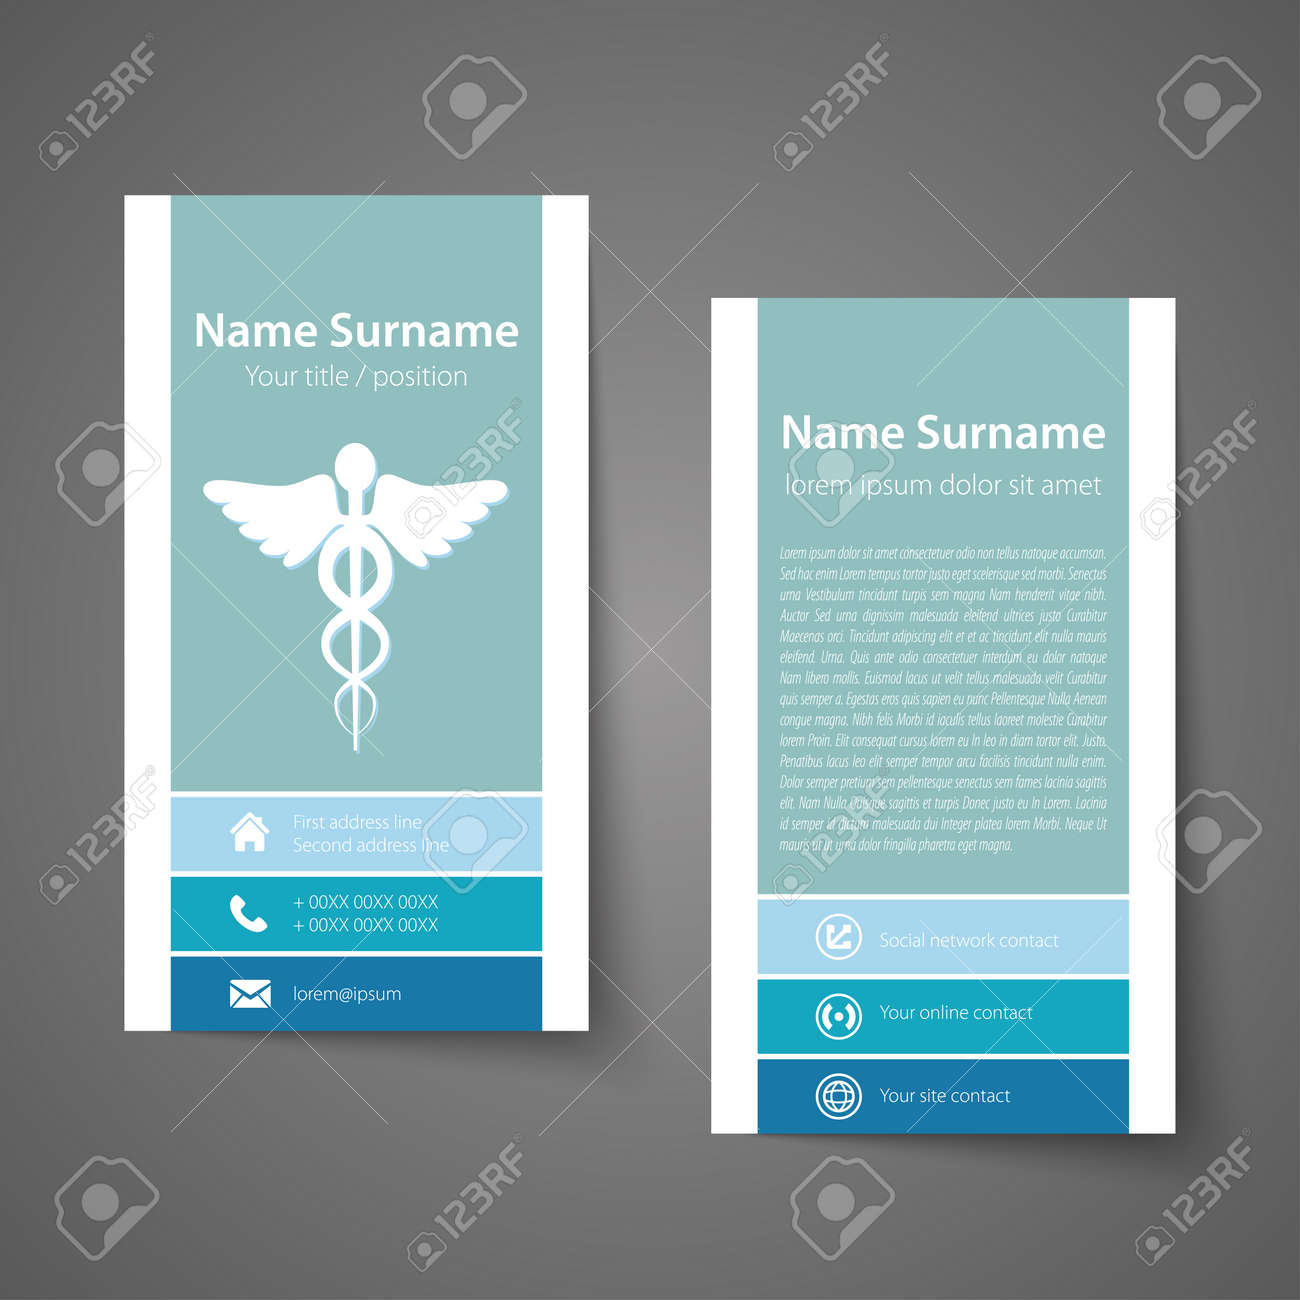 modern simple business card template for physicians vector format modern simple business card template for physicians vector format stock vector 41950931